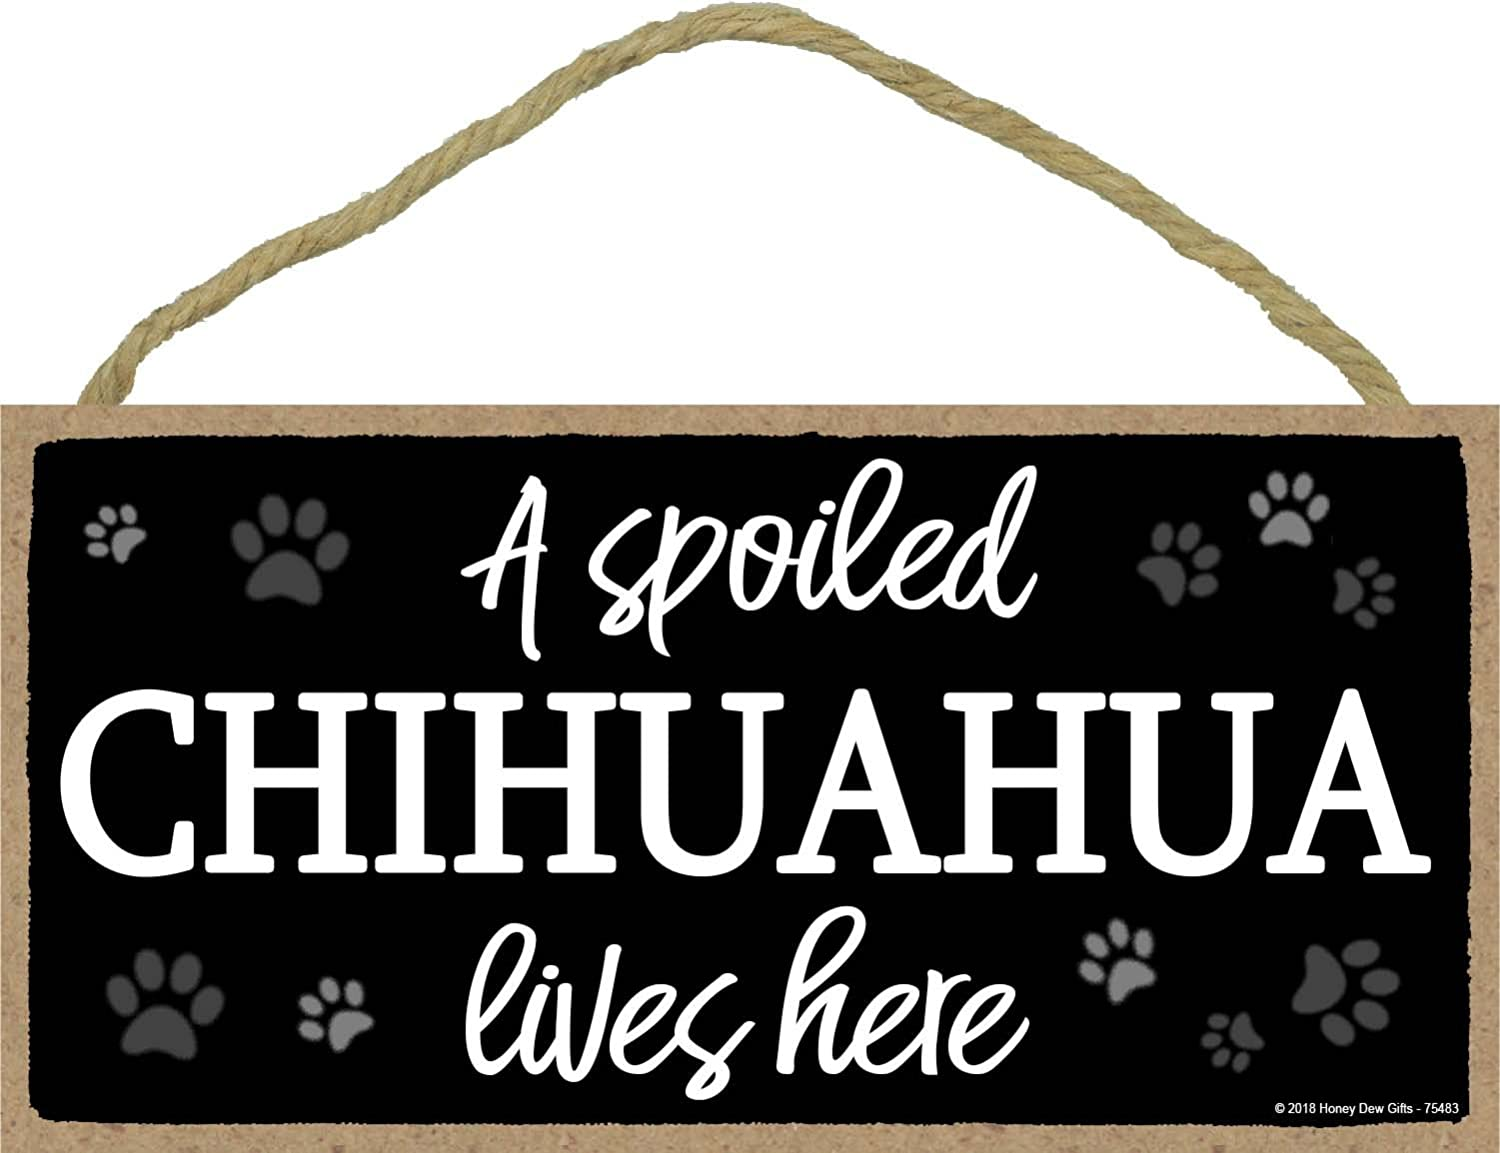 A Spoiled Chihuahua Lives Here - 5 x 10 inch Hanging Spoiled Dog Sign, Wall Art, Decorative Wood Sign Home Decor, Chihuahua Gifts